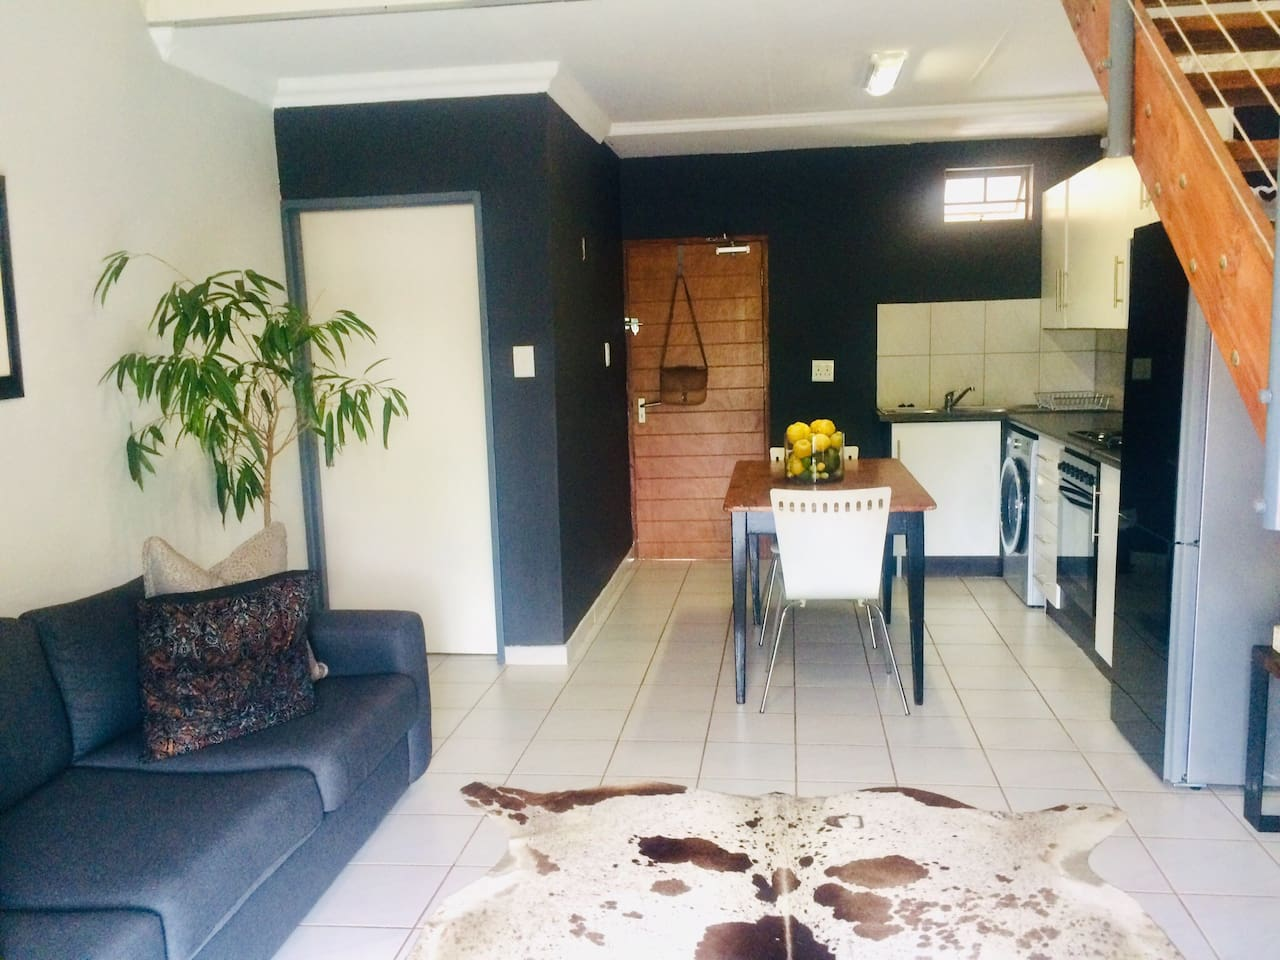 58@FarmRoad offers you an entire place, clean and neat as the owner herself. When you enter the property, you will find yourself in a fully equipped kitchen, open plan living room with a guest toilet.  The space is north facing and totally private.